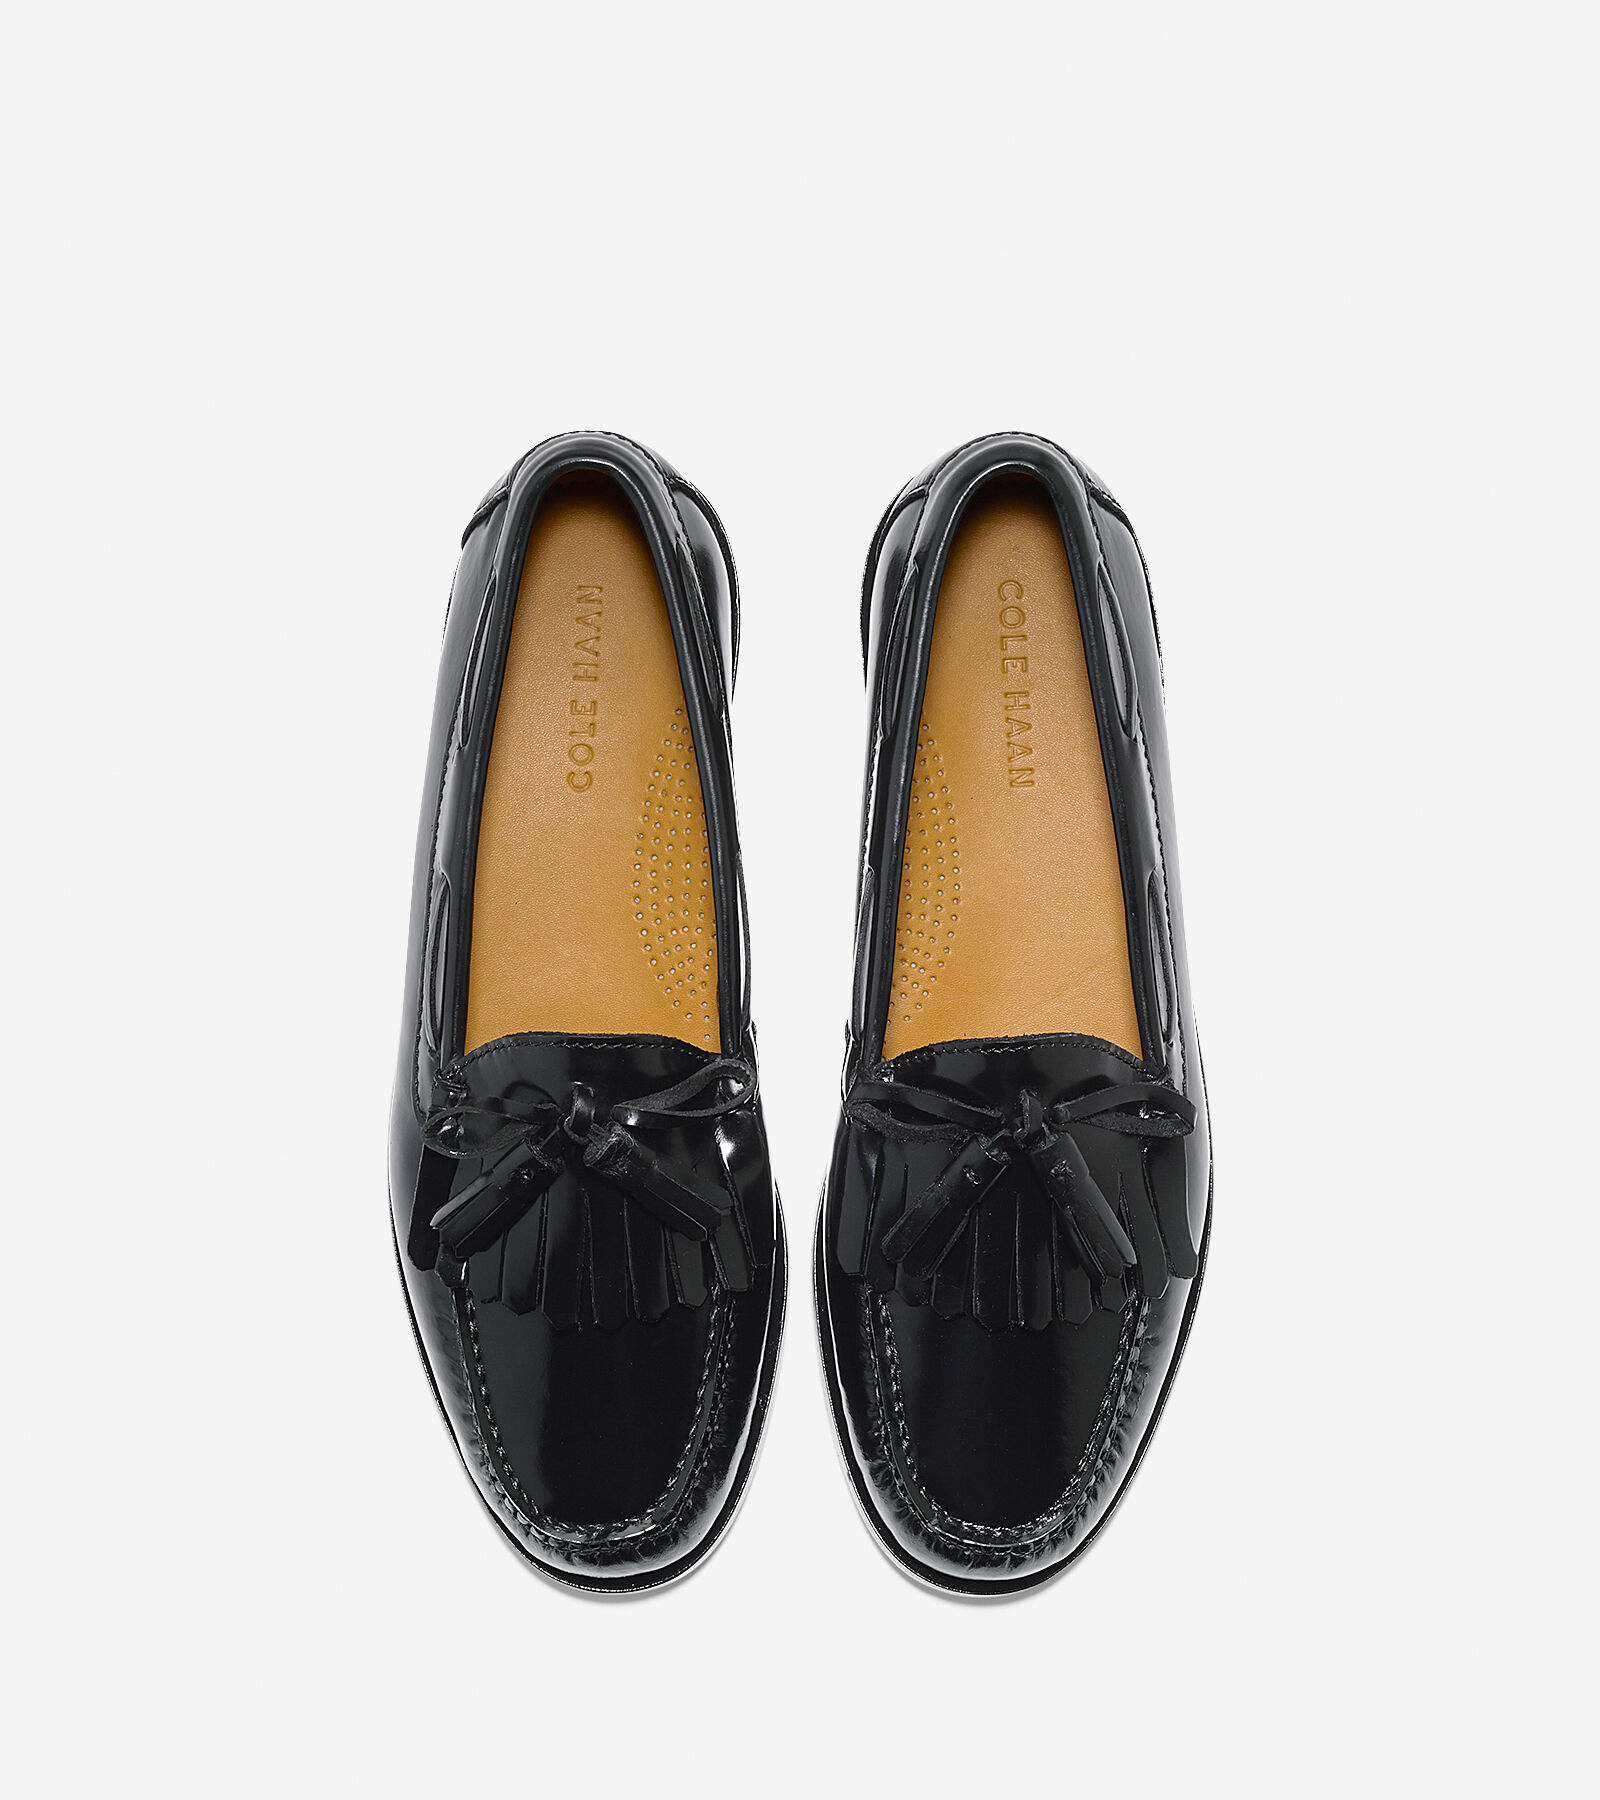 cole haan shoes pinch bow ii loafers barney's nyc 714776